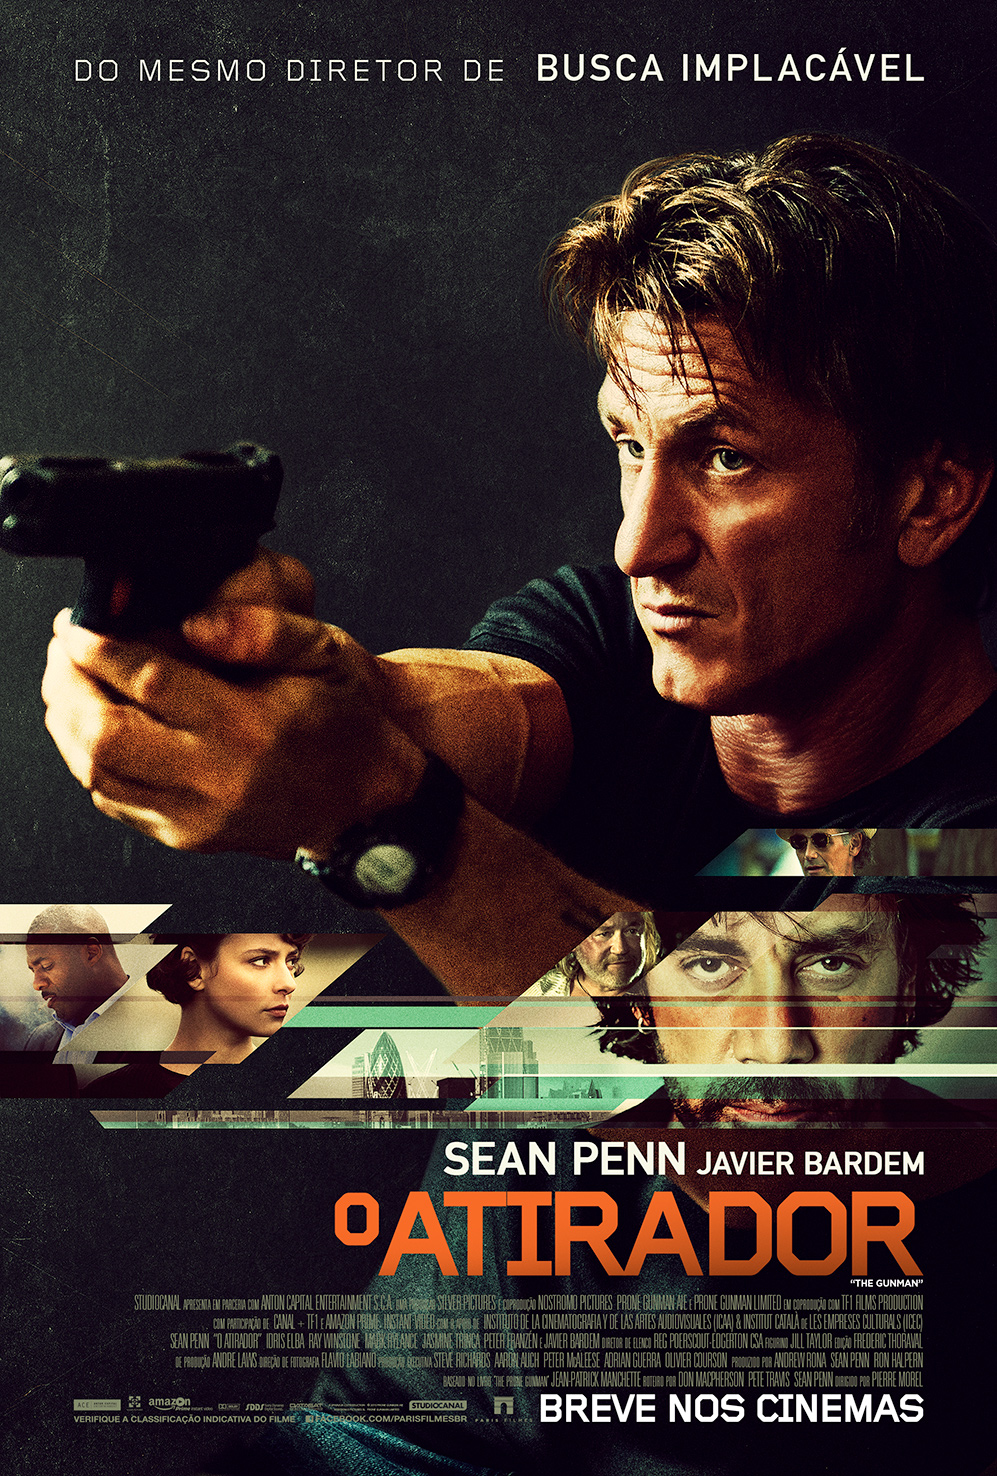 The Gunman-Official Poster-21JANEIRO2014-02